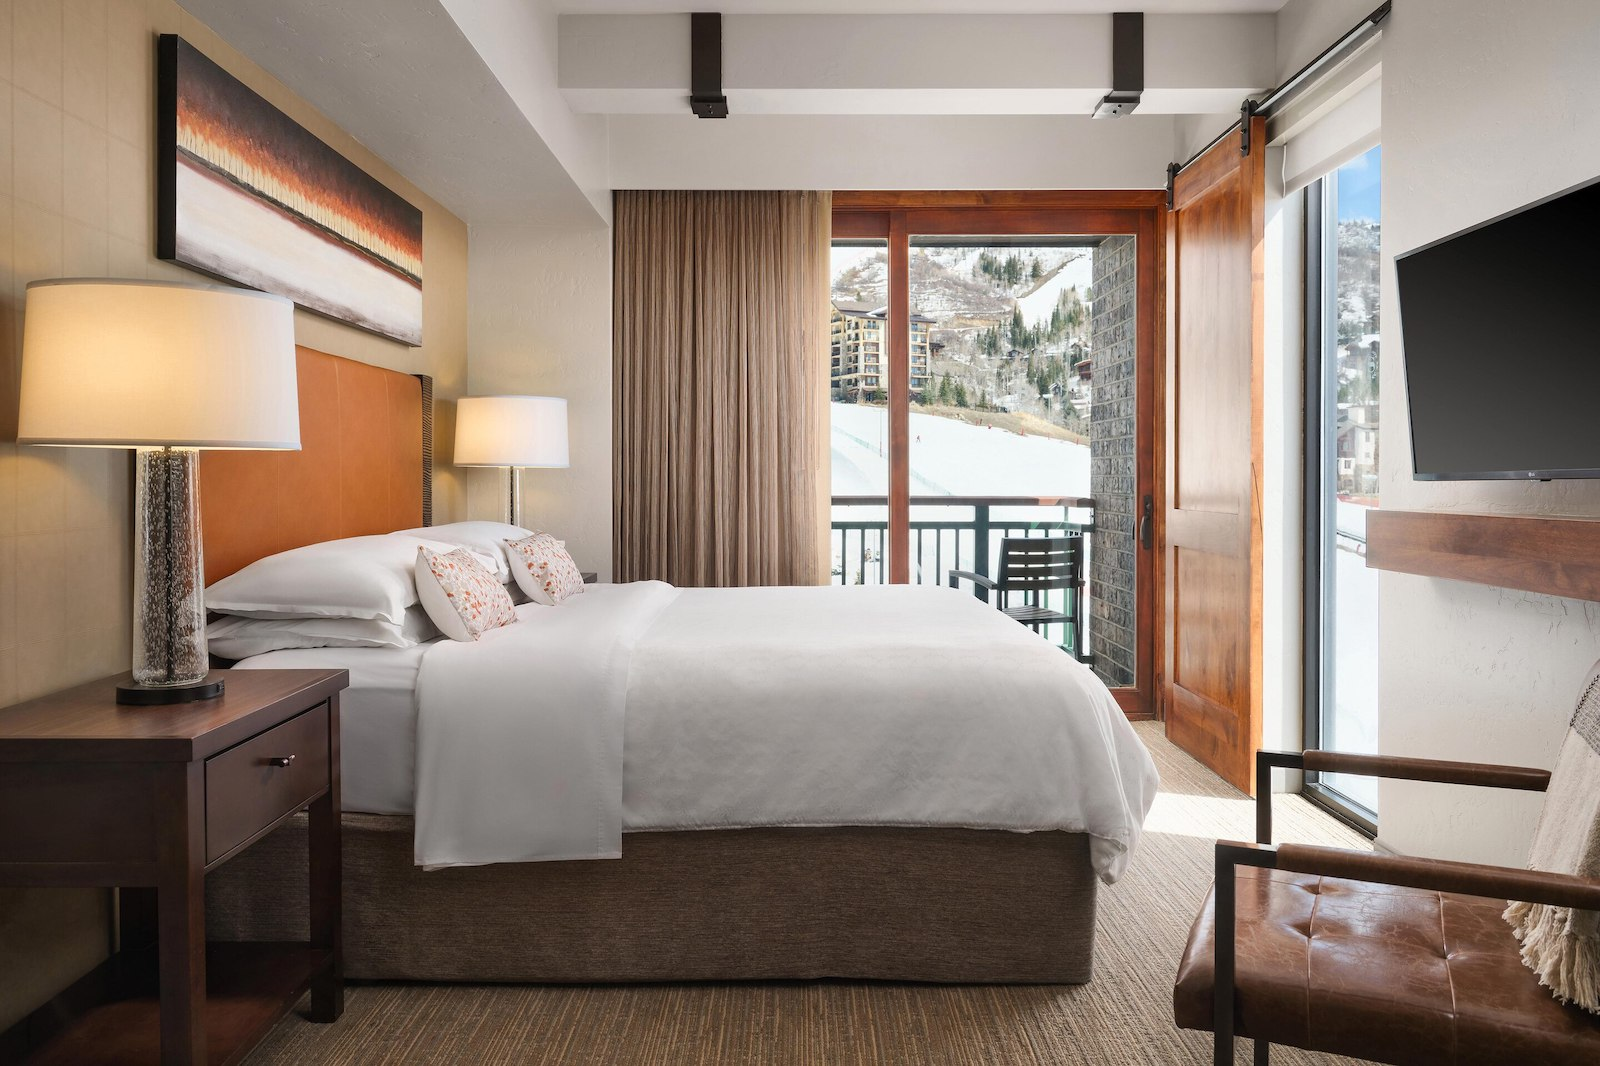 Image of a mountain view one-bedroom villa at the Sheraton Steamboat Resort Villas in Colorado